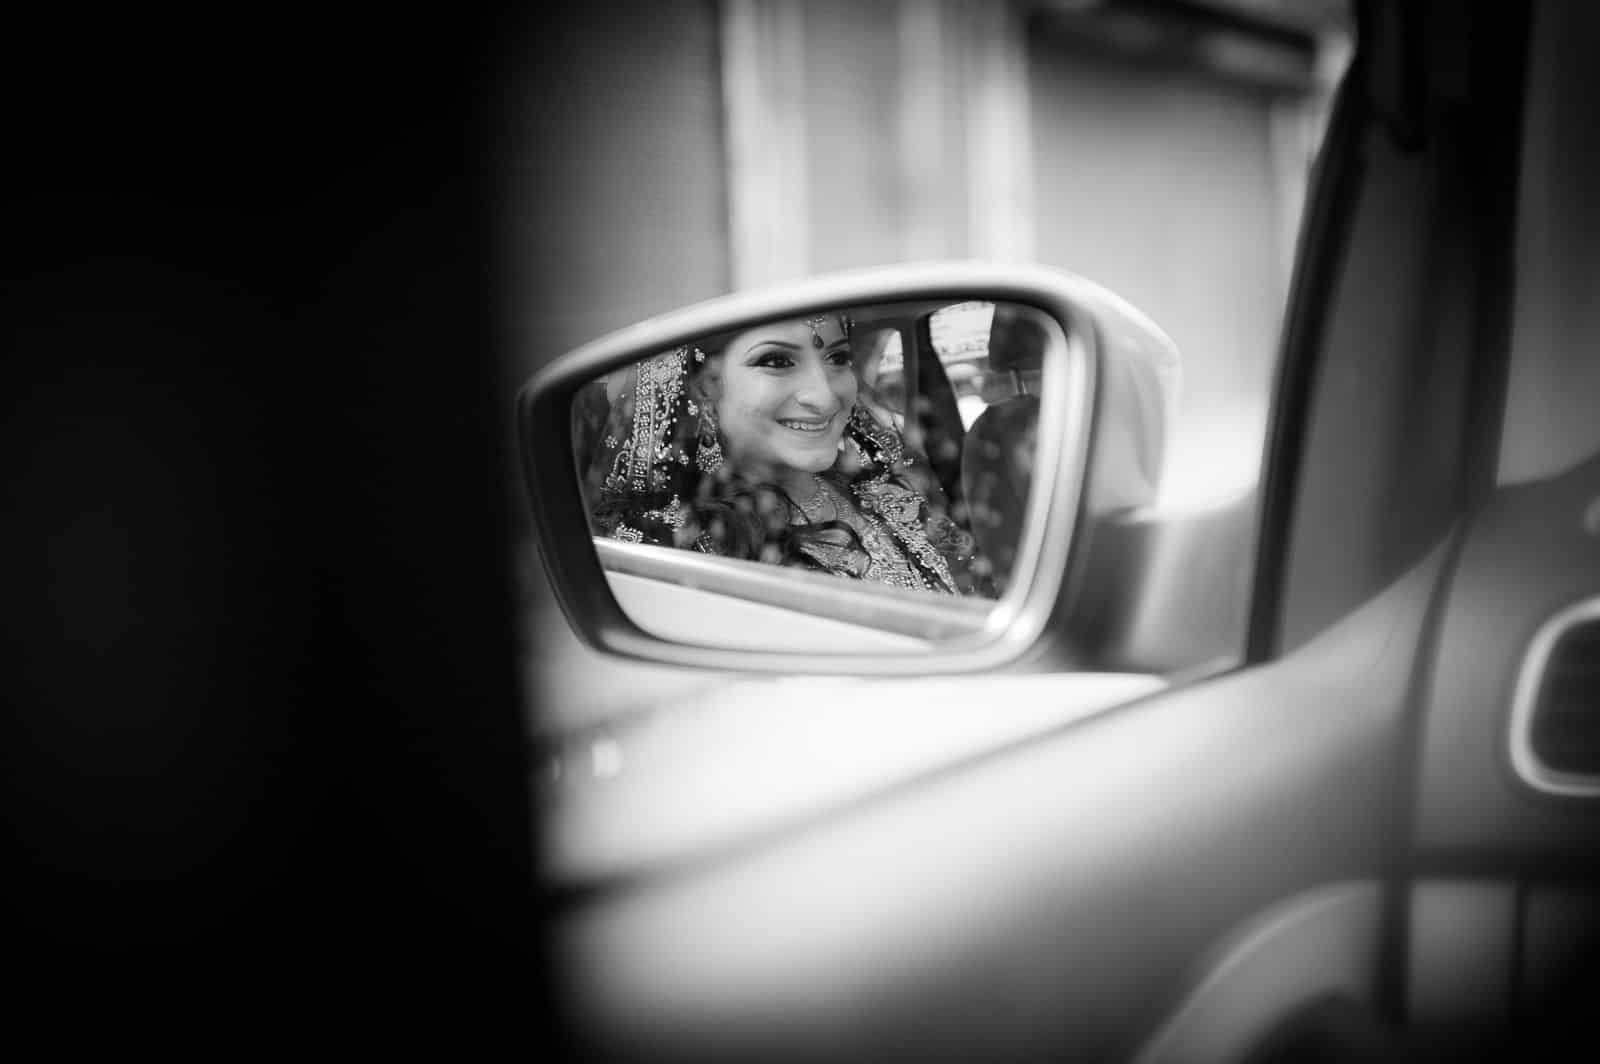 top-wedding-photographer-kerala-bride-reflection-car-mirror